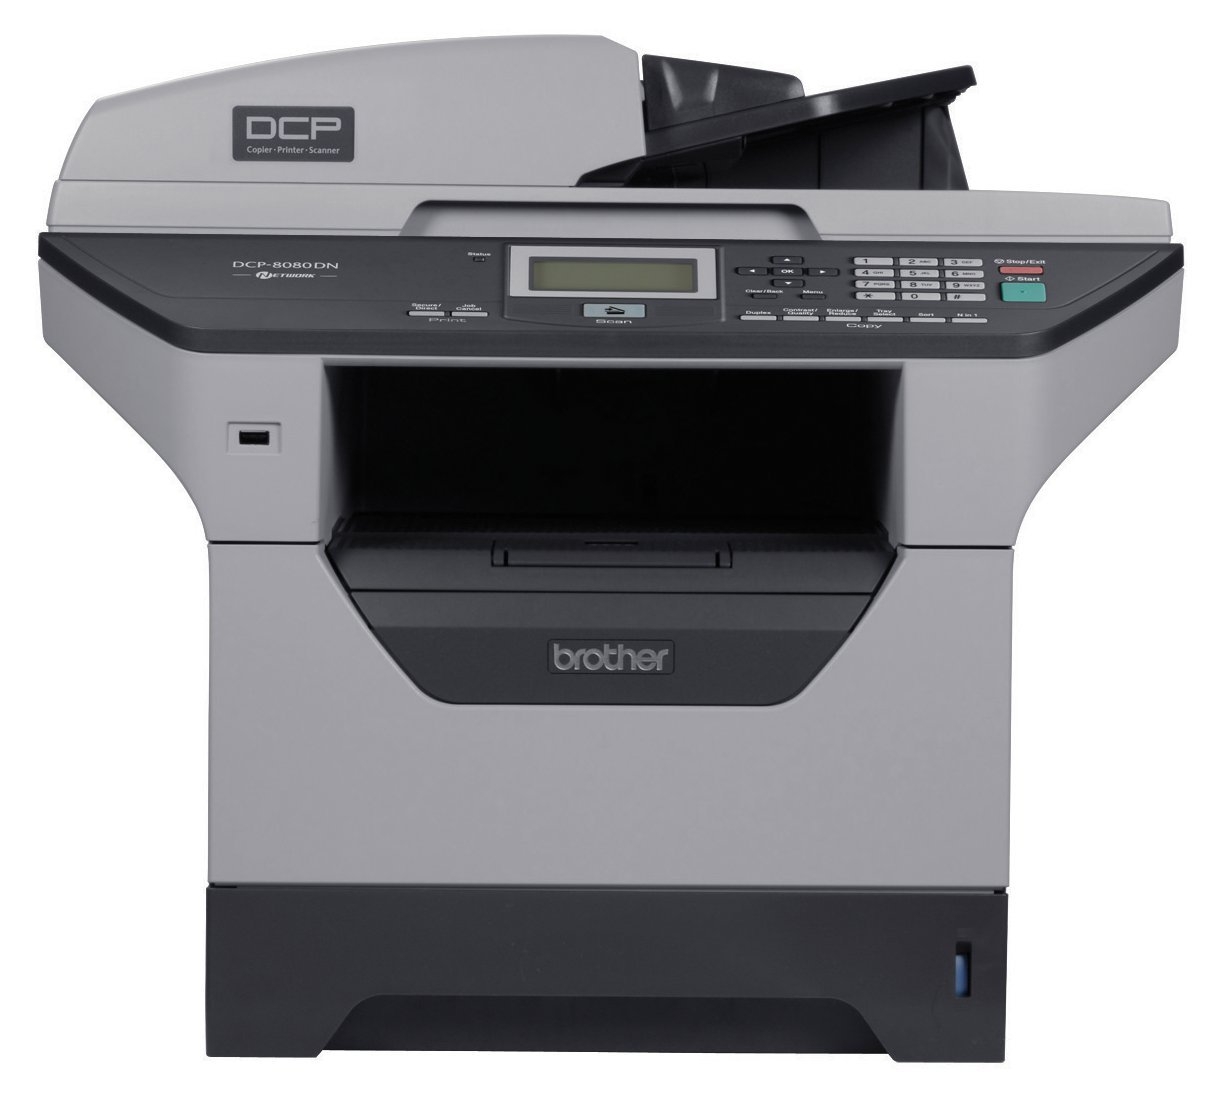 Amazon.com: Brother DCP-8080DN Digital Copier y Laser ...